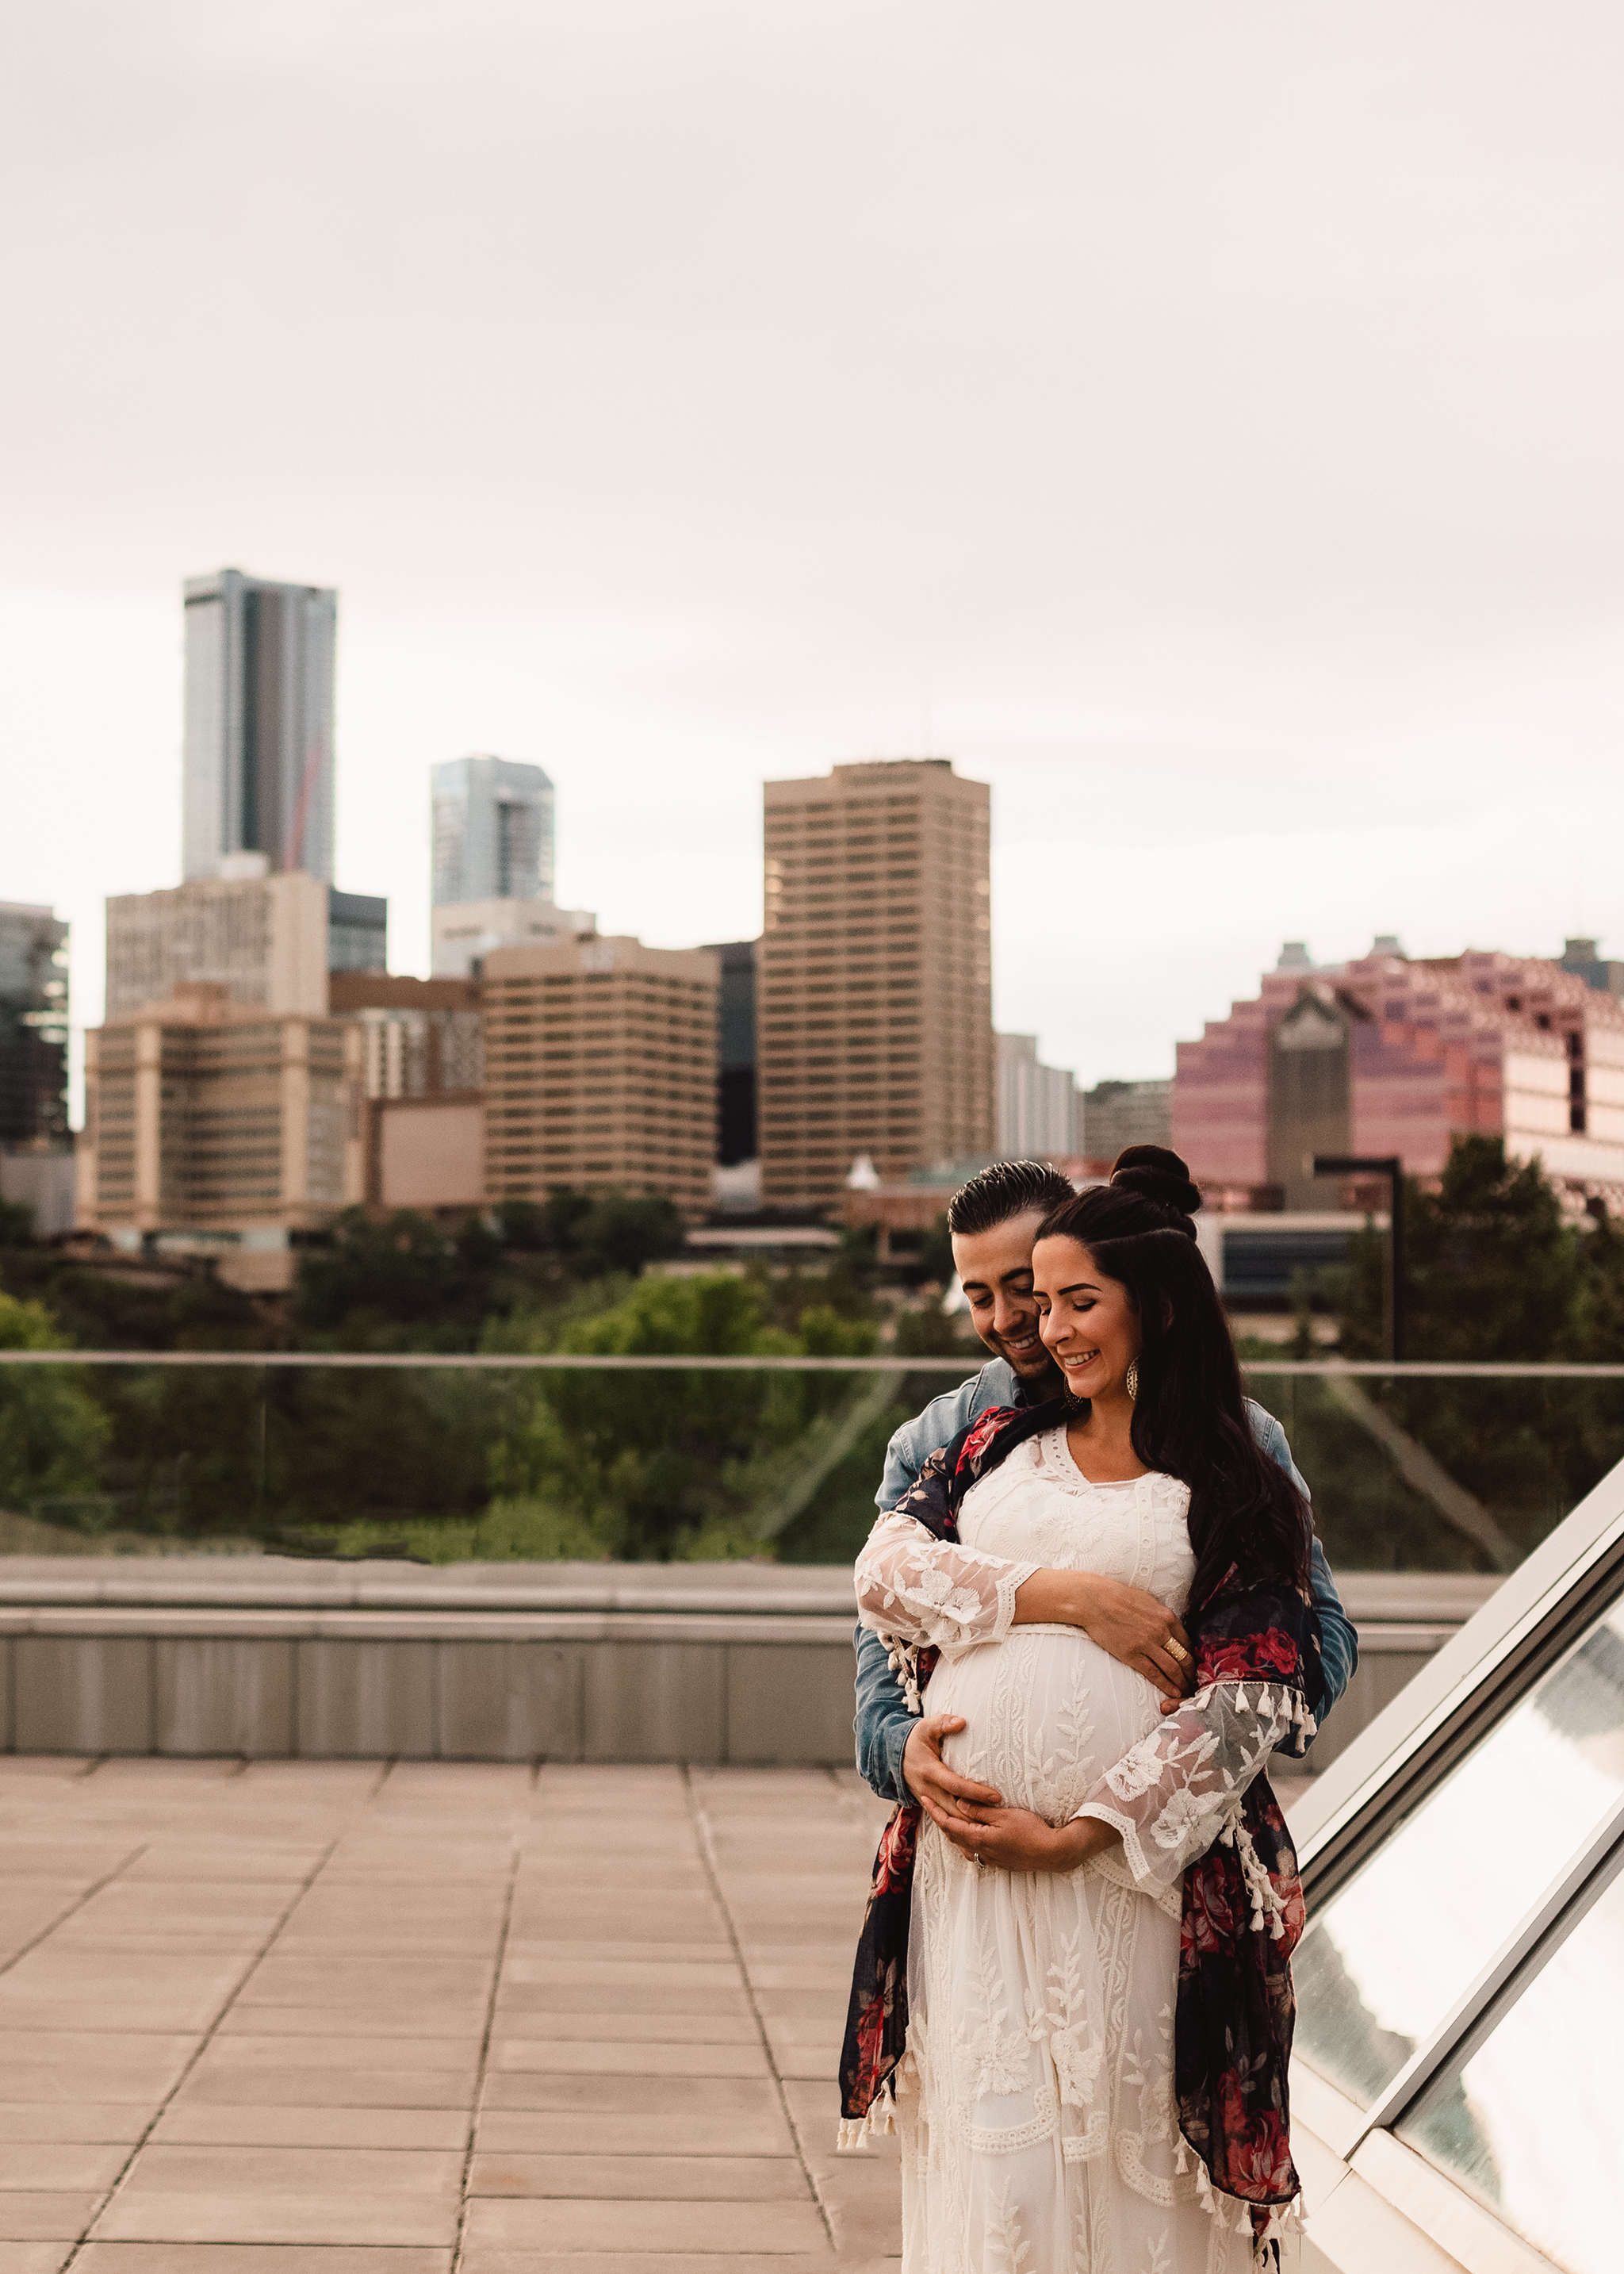 Edmonton Maternity Newborn Photographer_Baby Winnie 18.jpg